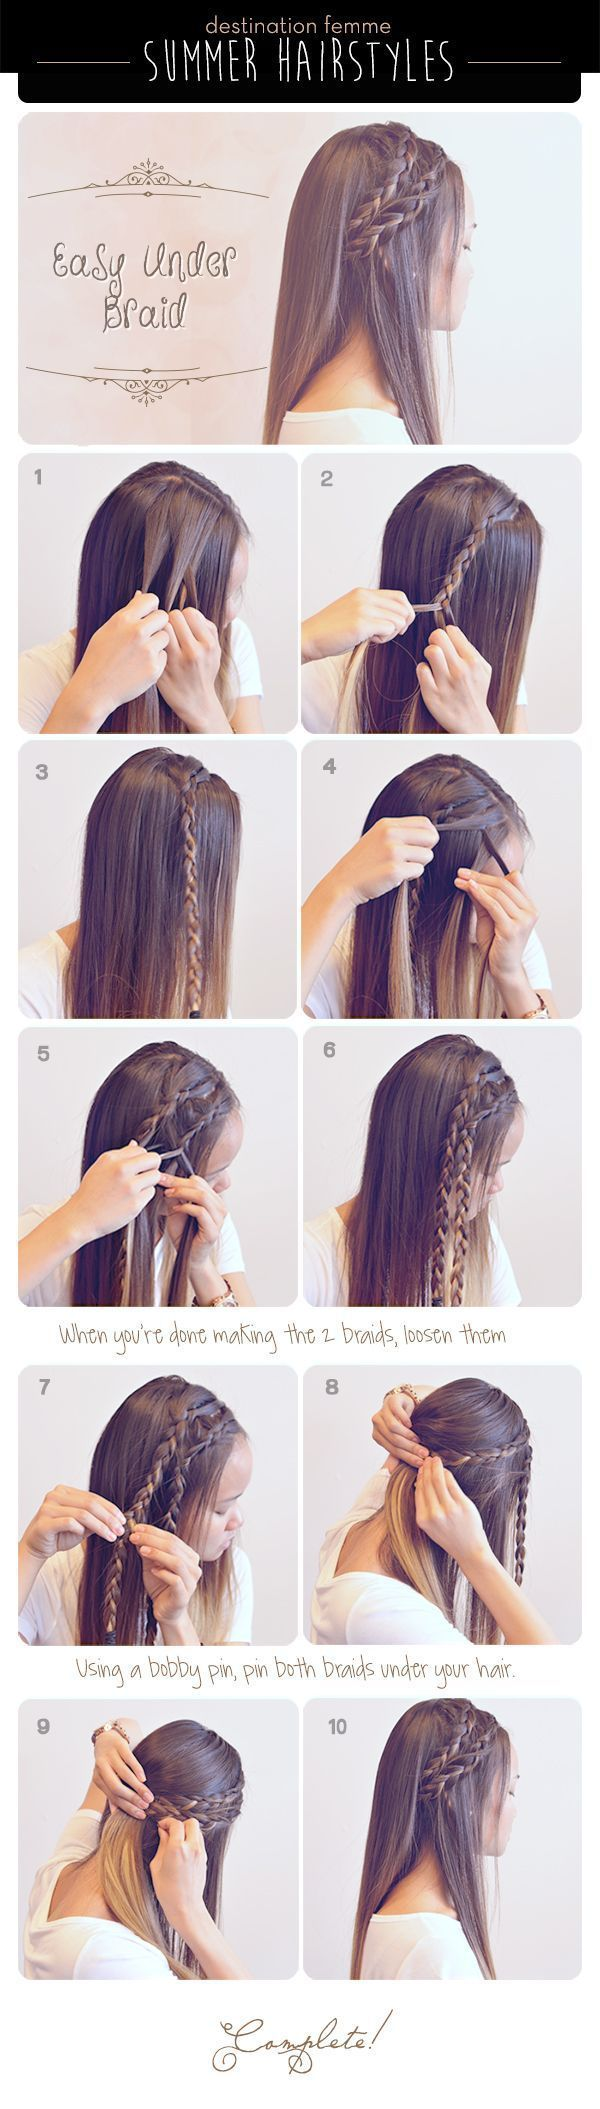 Summer Braid Hairstyle For Summer Pictures, Photos, and Images for Facebook, Tumblr, Pinterest, and Twitter